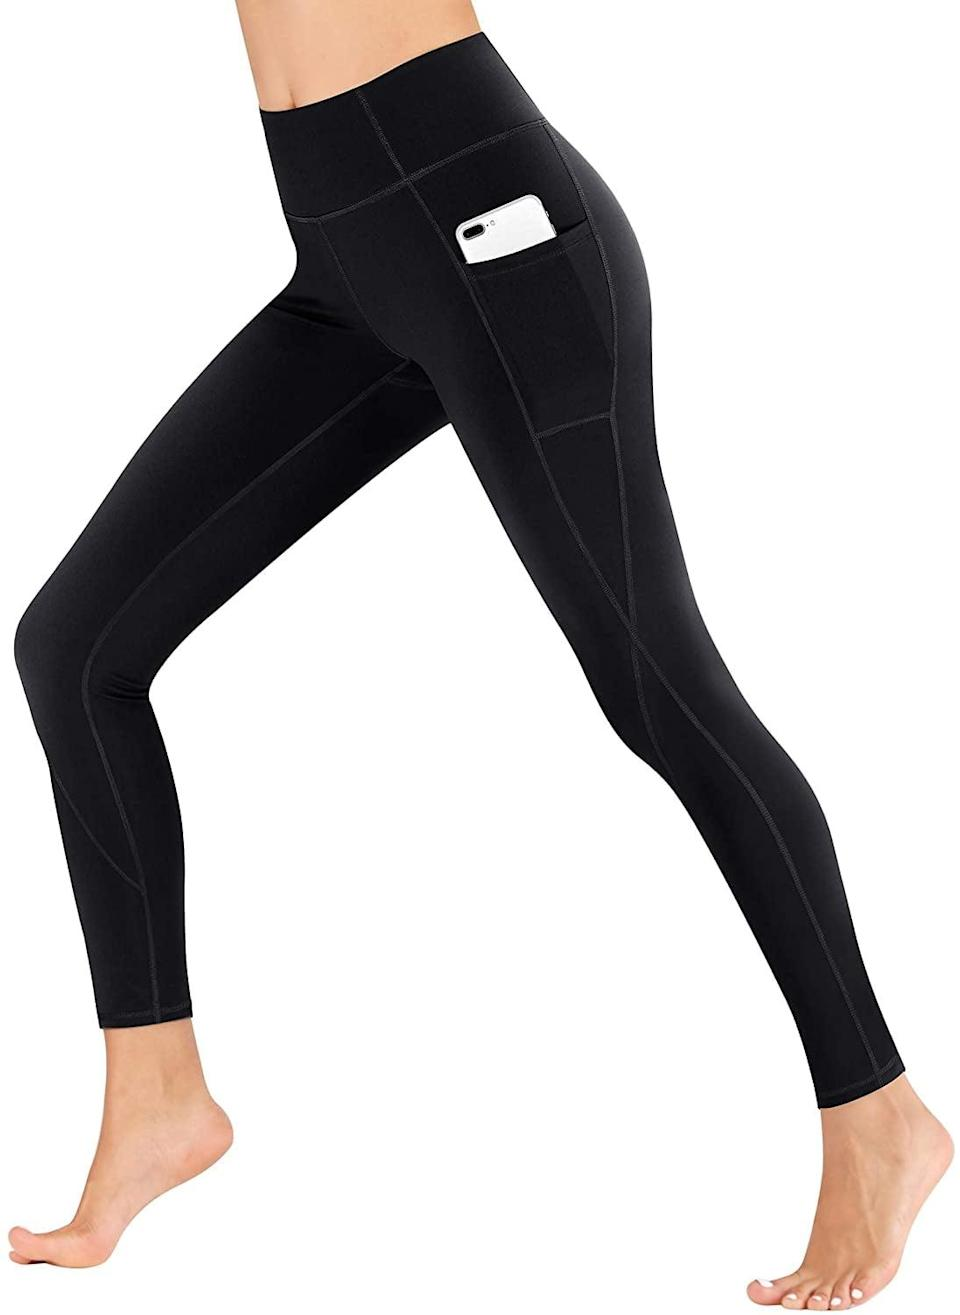 <p>From lifting weights to walking outdoors, the <span>Heathyoga High Waisted Leggings With Pockets</span> ($17, originally $30) will be your new favorite active leggings.</p>